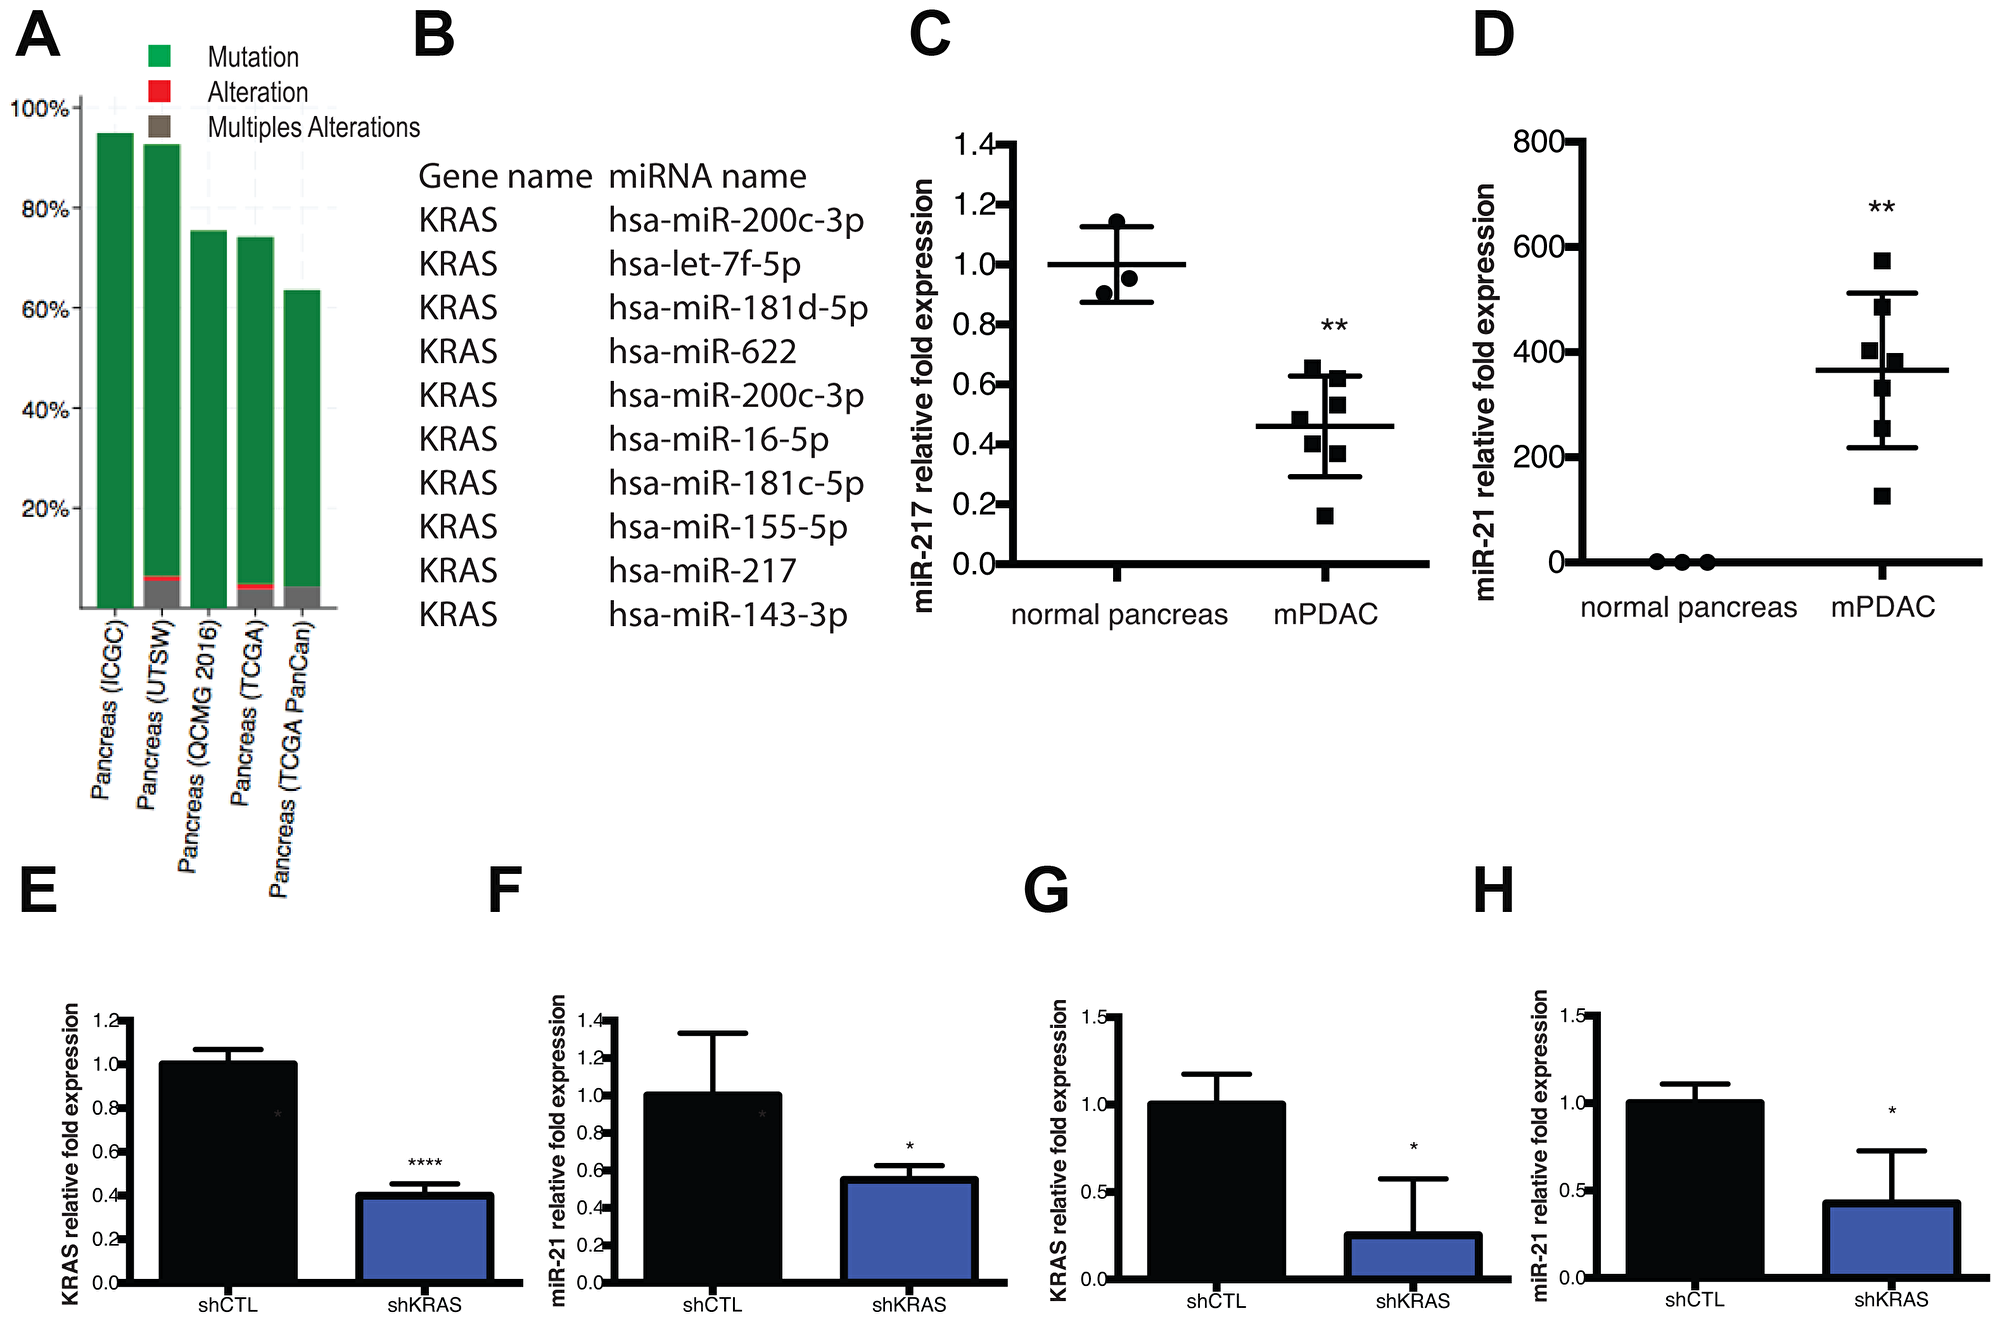 KRAS mutation and miRNA dysregulation are components of the mPDAC gene signature.